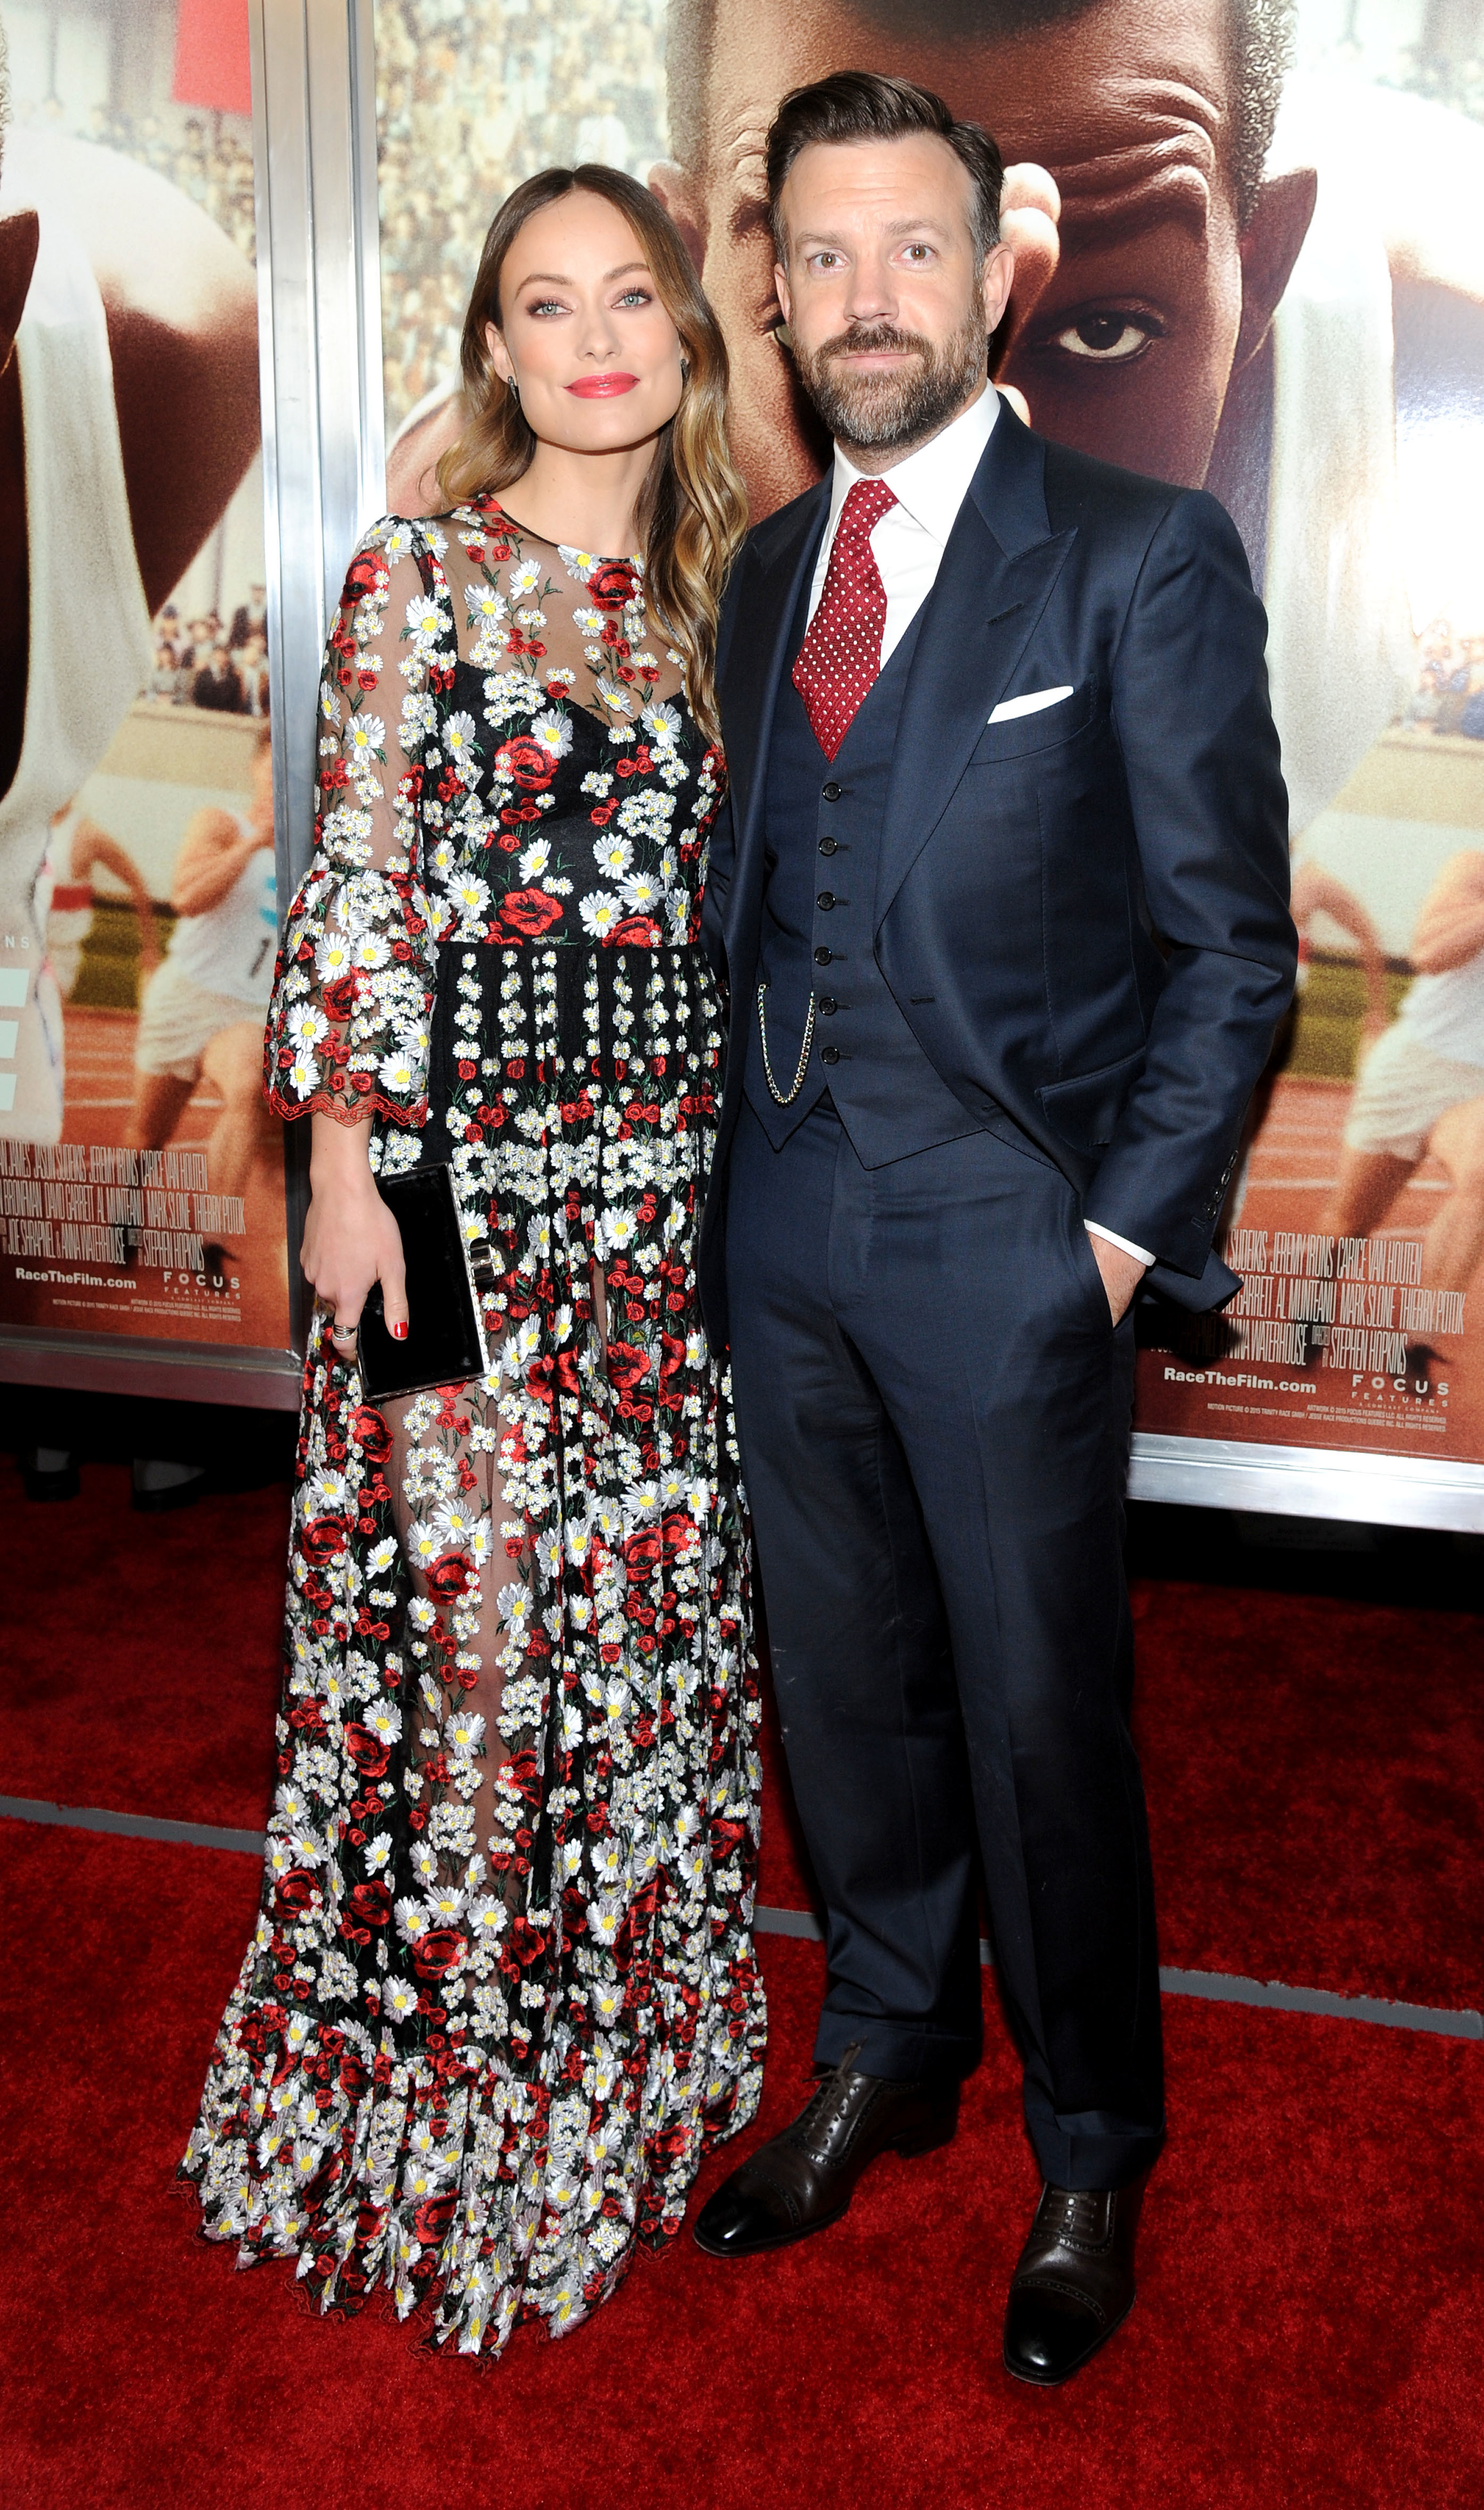 When will Jason Sudeikis and Olivia Wilde tie the knot?